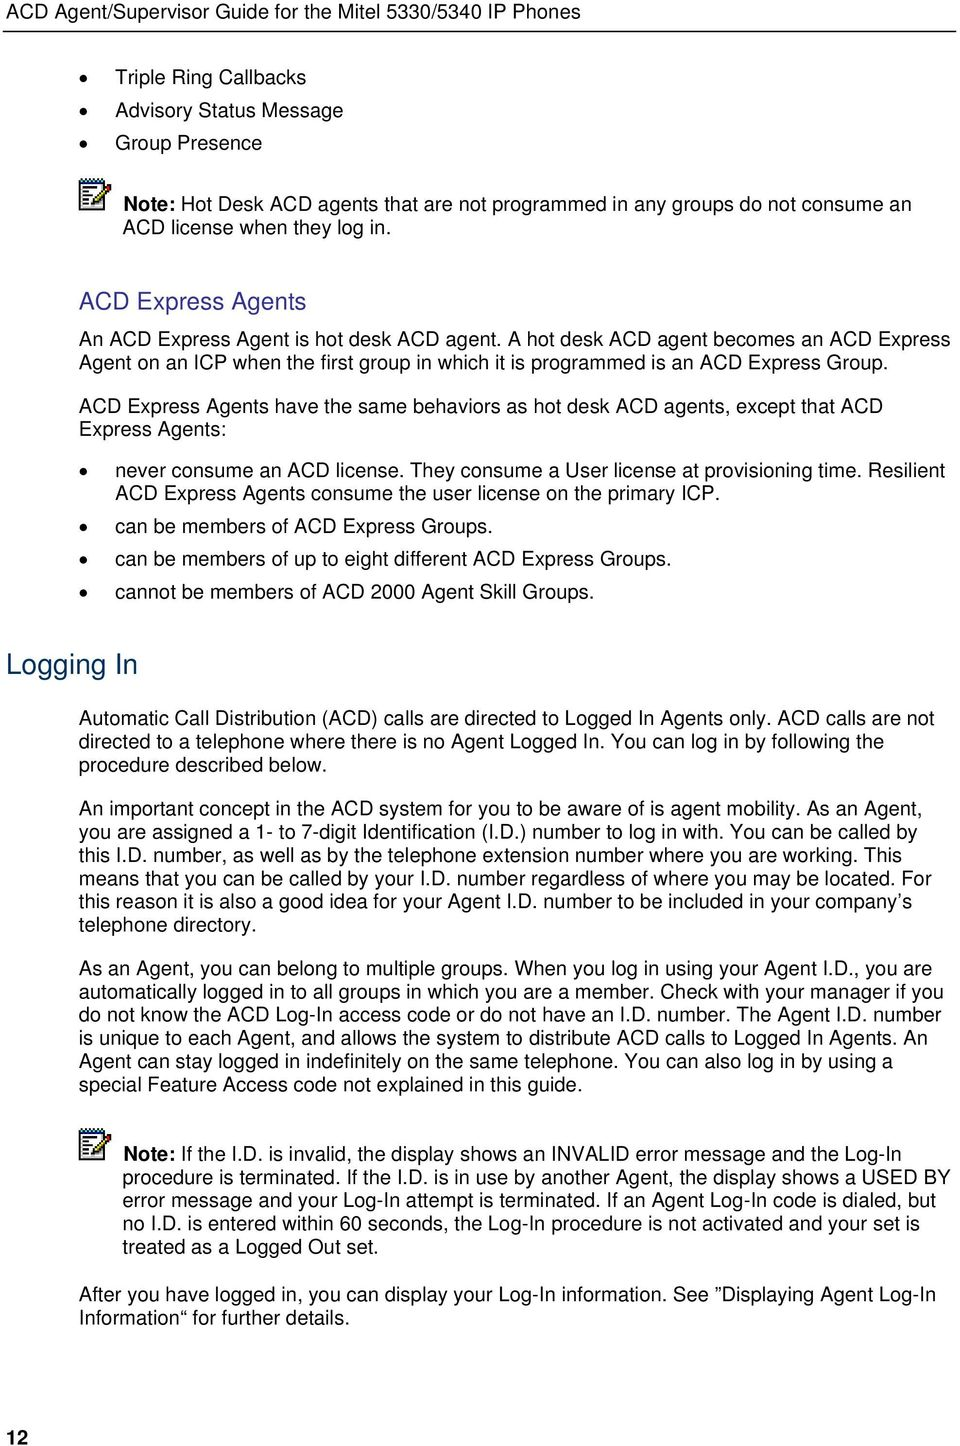 ACD Express Agents have the same behaviors as hot desk ACD agents, except that ACD Express Agents: never consume an ACD license. They consume a User license at provisioning time.